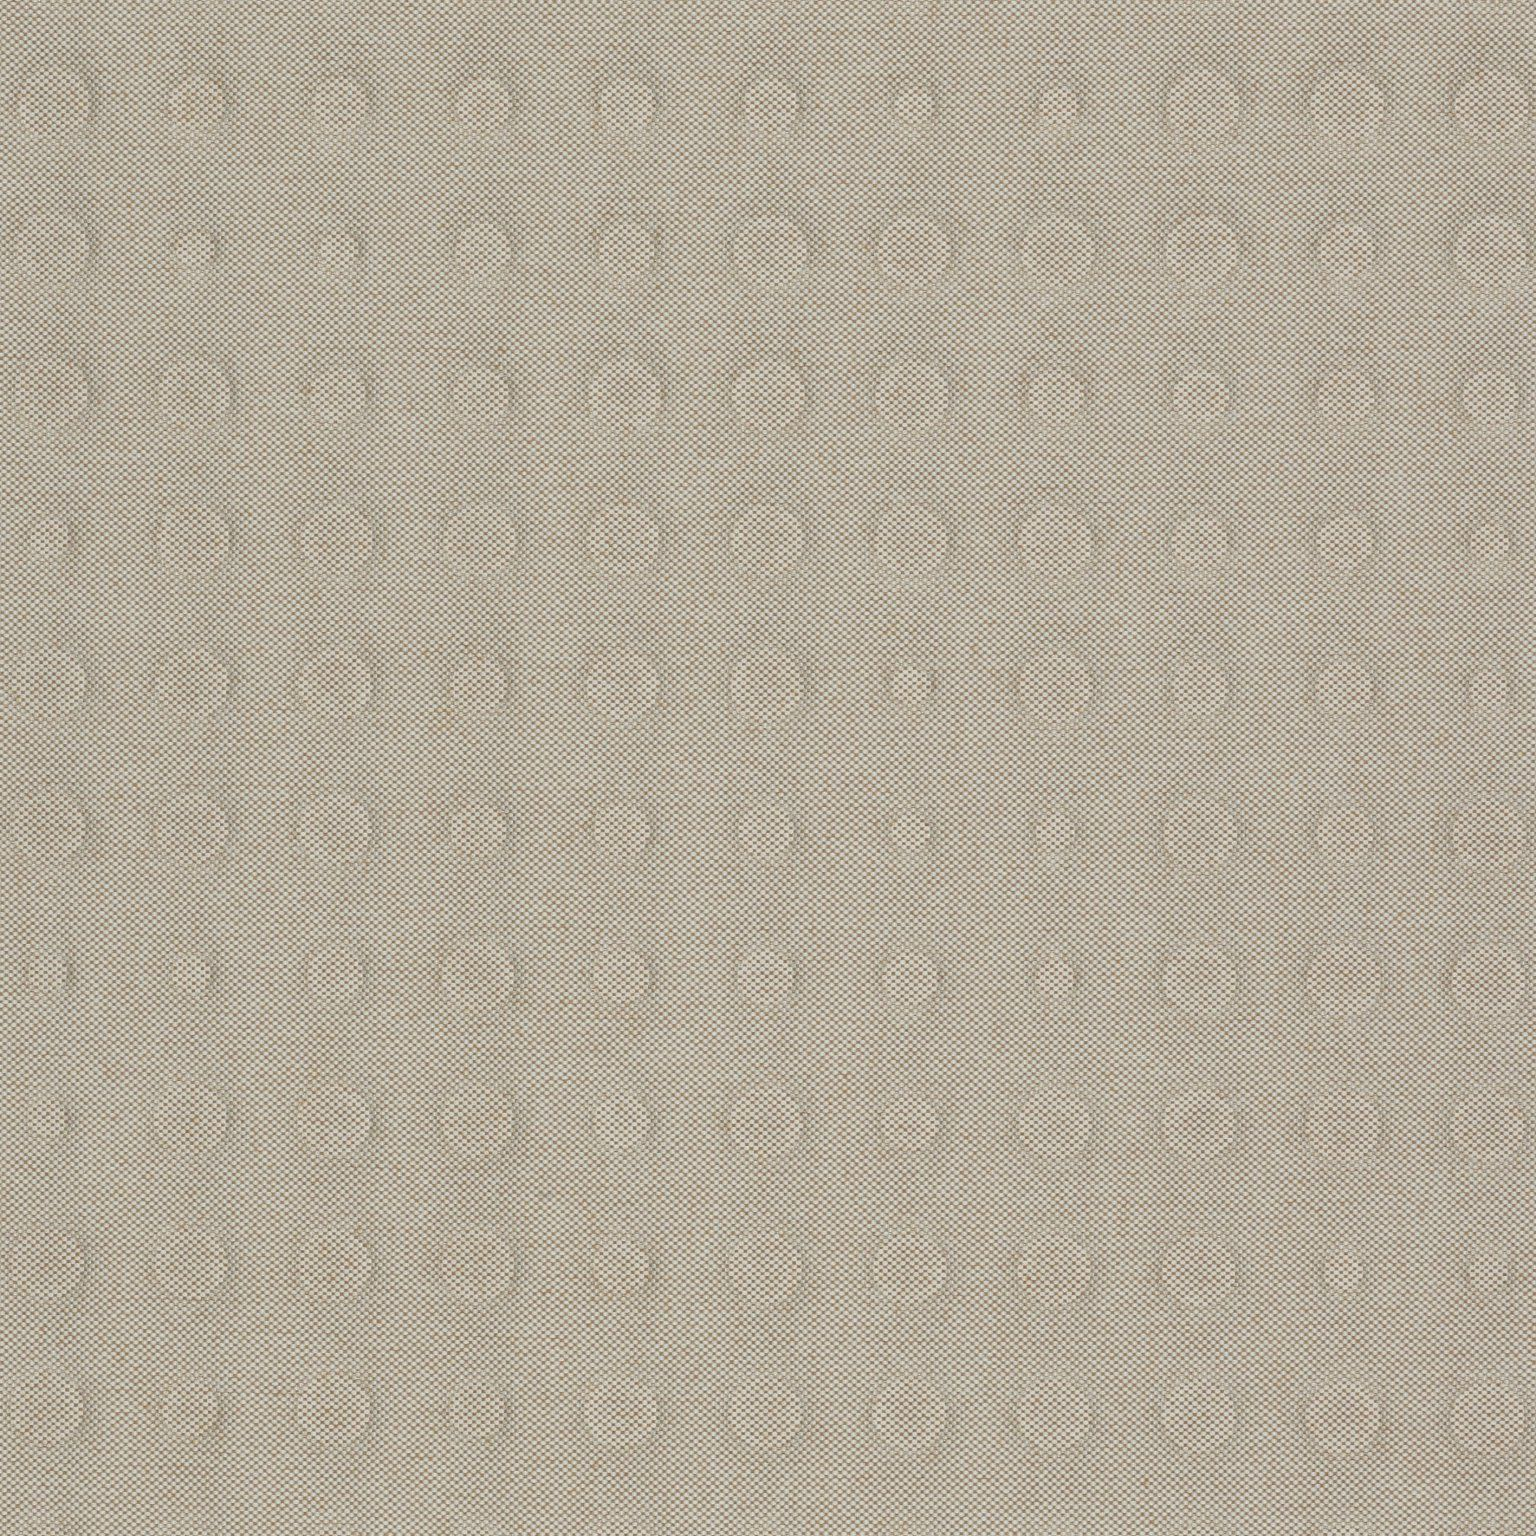 Kvadrat Upholstery Fabric Highfield Cream Quilted Dots 6.5 yards 214 NM